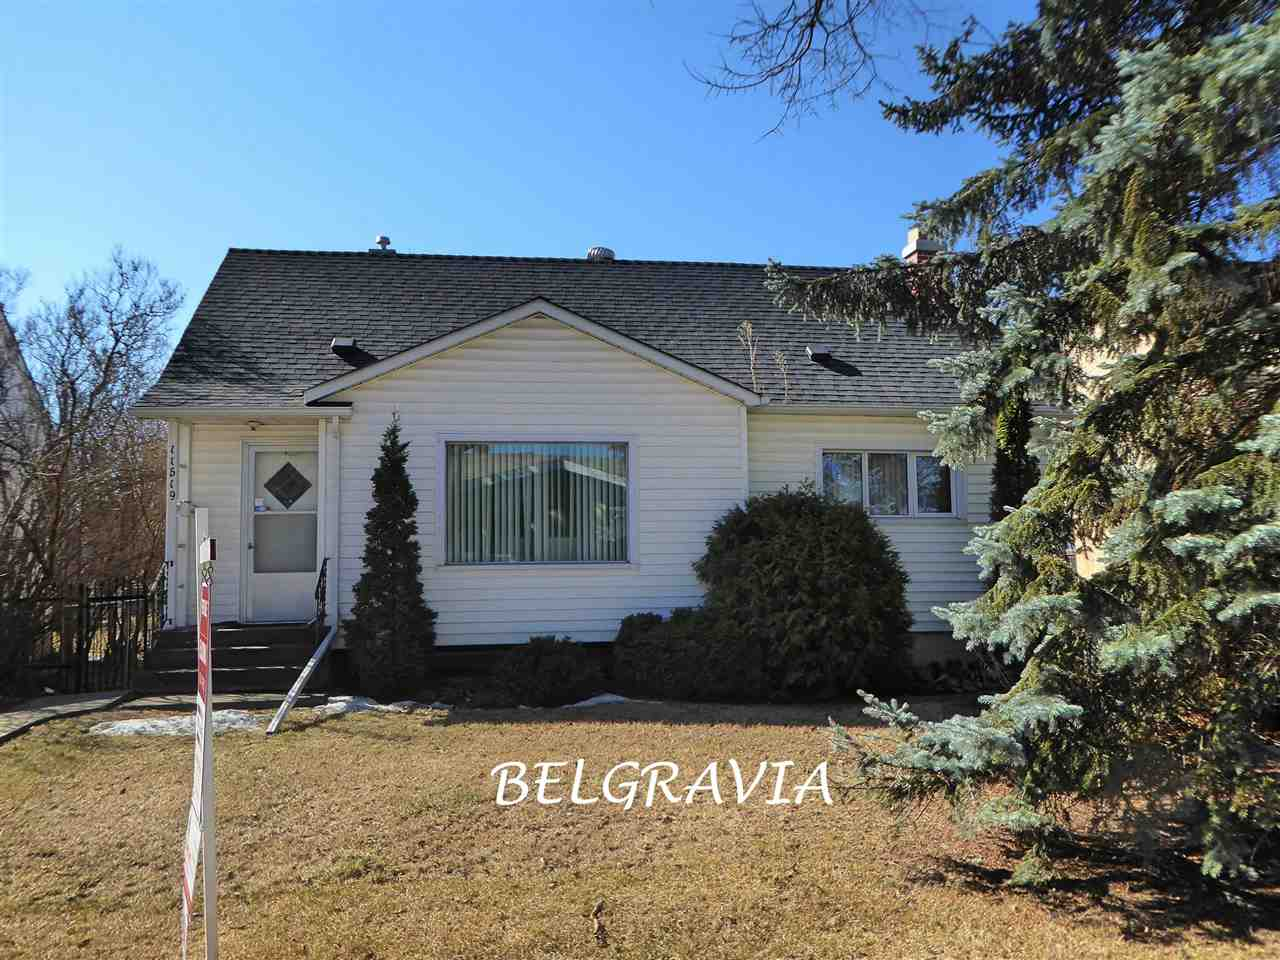 Welcome to  Mckernan/Belgravia and this immaculate 5 bedroom 1431 sqft spacious and bright family home where pride of ownership is evident.  Many upgrades include: newer carpets (2012), electrical service (2012), shingles (2016), bathrooms (2012) and sewer line (2014). Main floor features a huge front room currently a dining room, a cozy living room, the kitchen with attached south facing family room and breakfast nook and a main floor bedroom and 4-piece bathroom. Lovely hardwood floors adorn this level. The upper level has 2 more bedrooms and a convenient 2-piece bathroom. The lower level has a spacious recreation room, 2 more bedrooms, 3-piece bathroom and the laundry/mechanical room. The sunny south yard is fenced, landscaped and includes a 22 x26 double detached garage.  Found on a beautiful tree lined street in one of Edmonton premier communities, this 1431 square foot semi-bungalow is walking distance to the hospitals, the U of A , the LRT and a short commute to downtown. A must to View!!